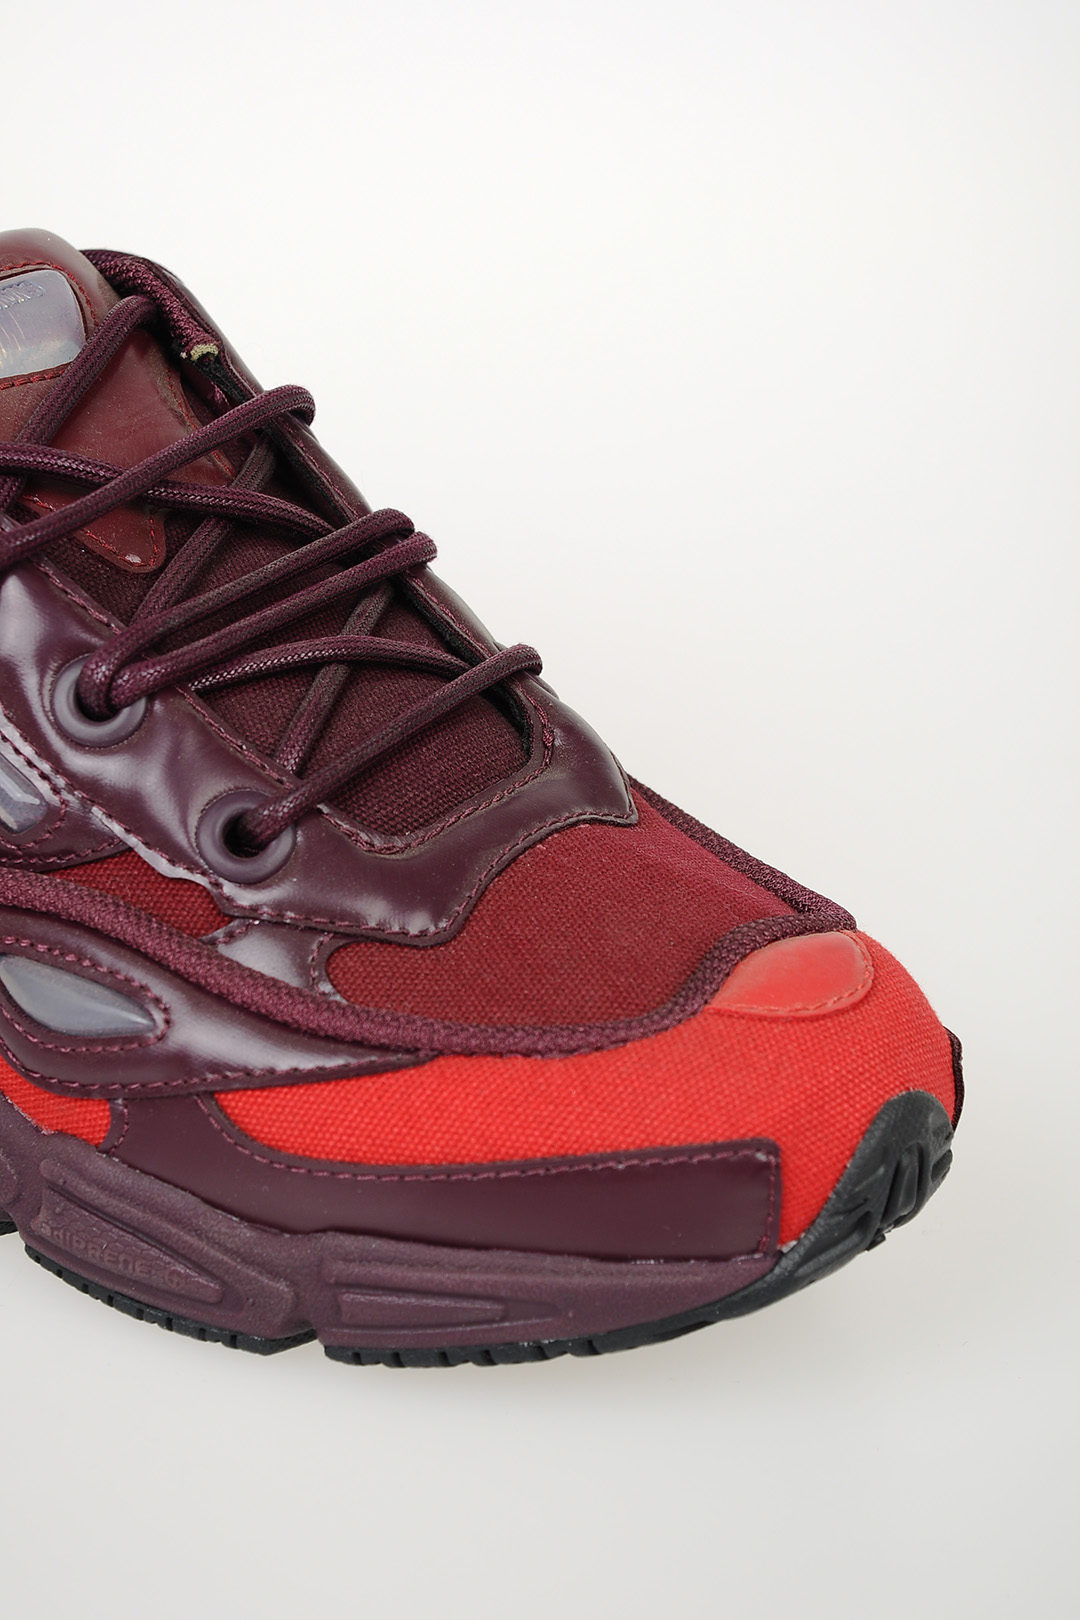 hot sale online d7390 49752 RAF SIMONS Fabric RS OZWEEGO III Sneakers